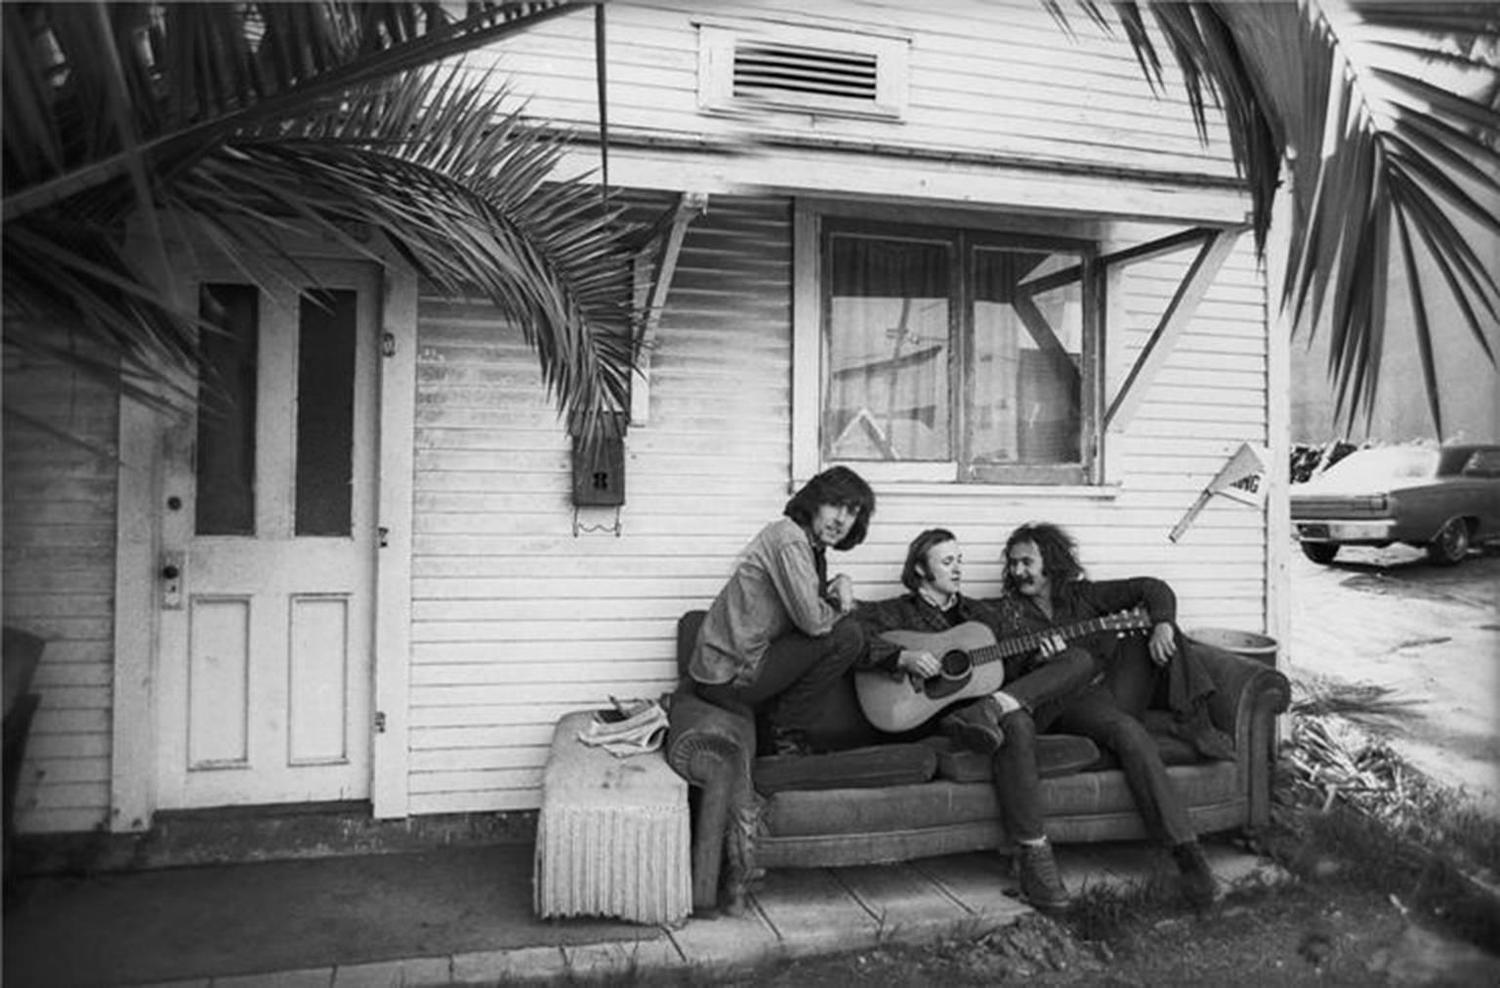 Jim Browne Jeep >> Henry Diltz - Crosby, Stills, and Nash Album Cover Outtake ...